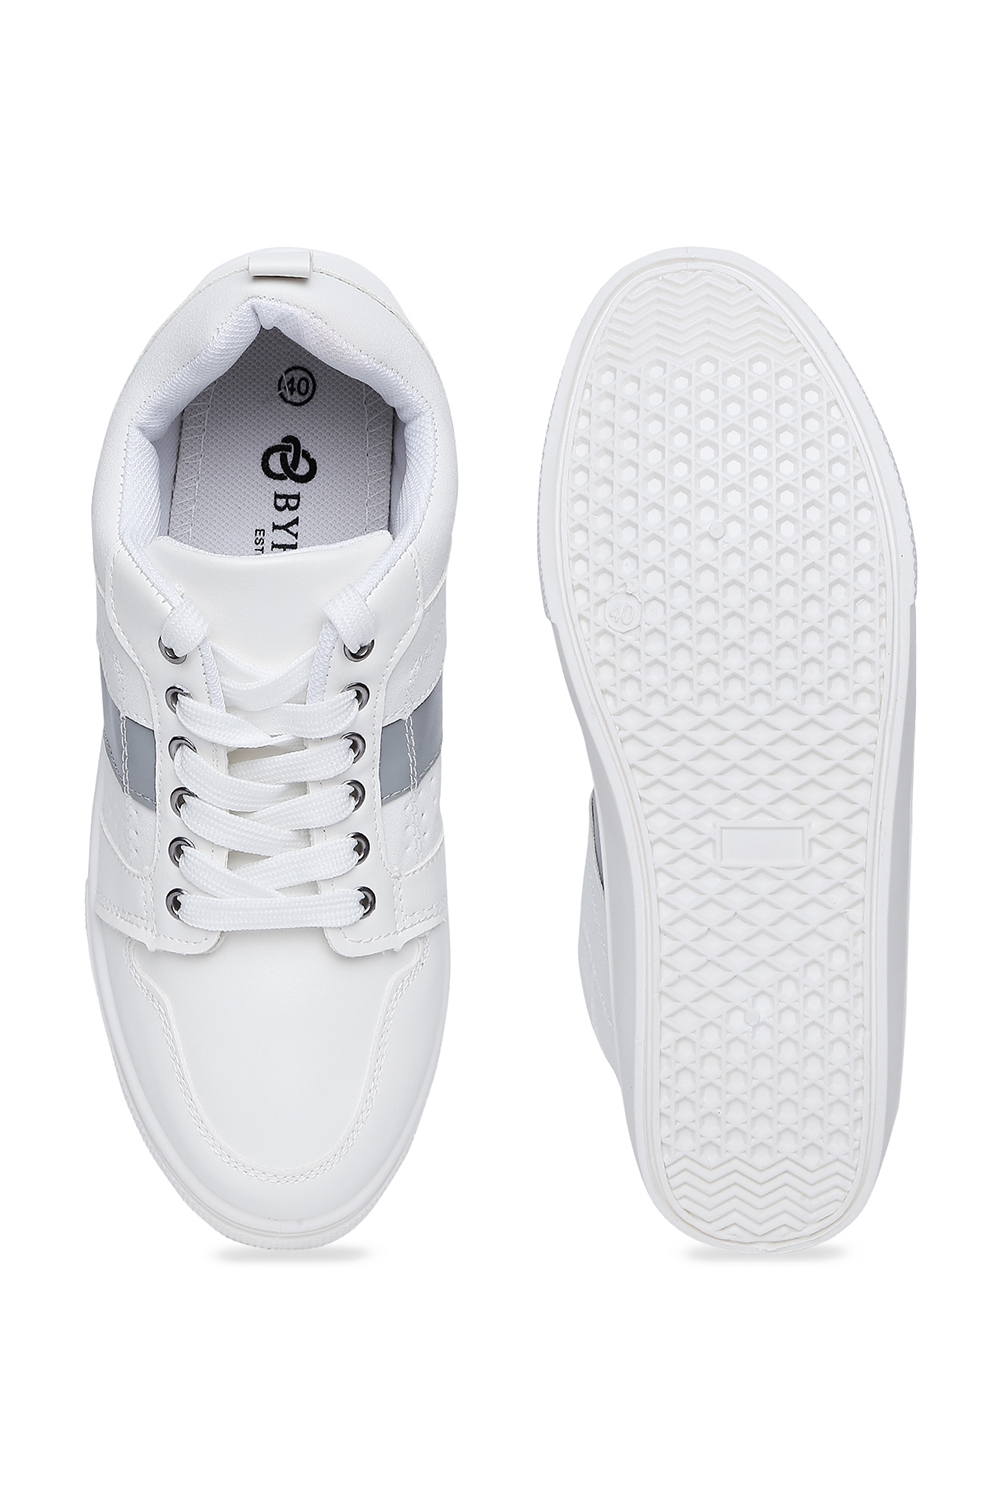 Pantaloons White Casual Shoes - Selling